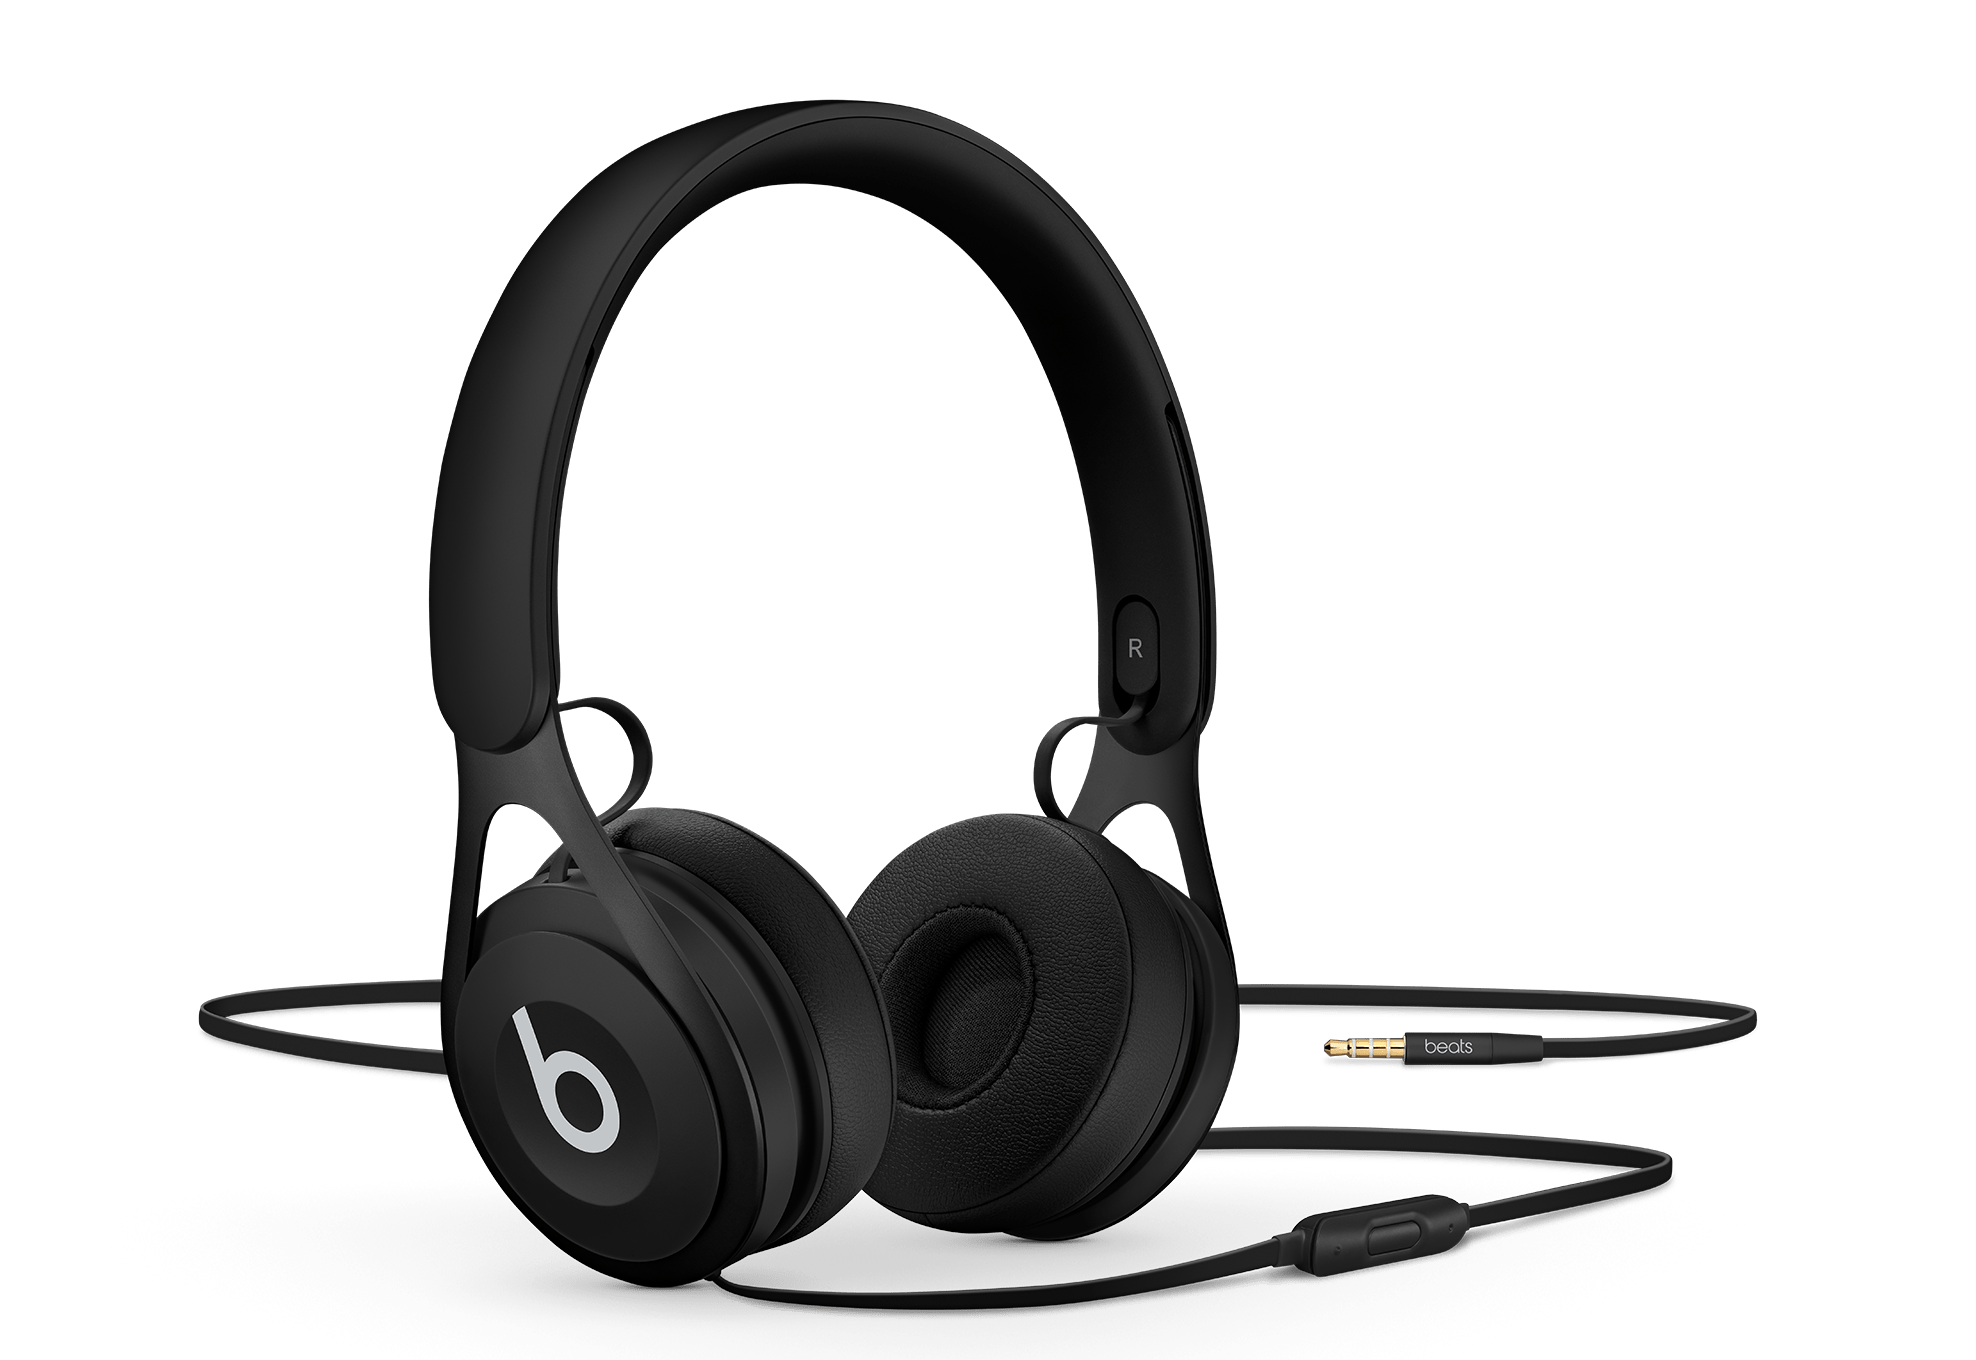 jpg black and white download Beets drawing headset. Beats ep by dre